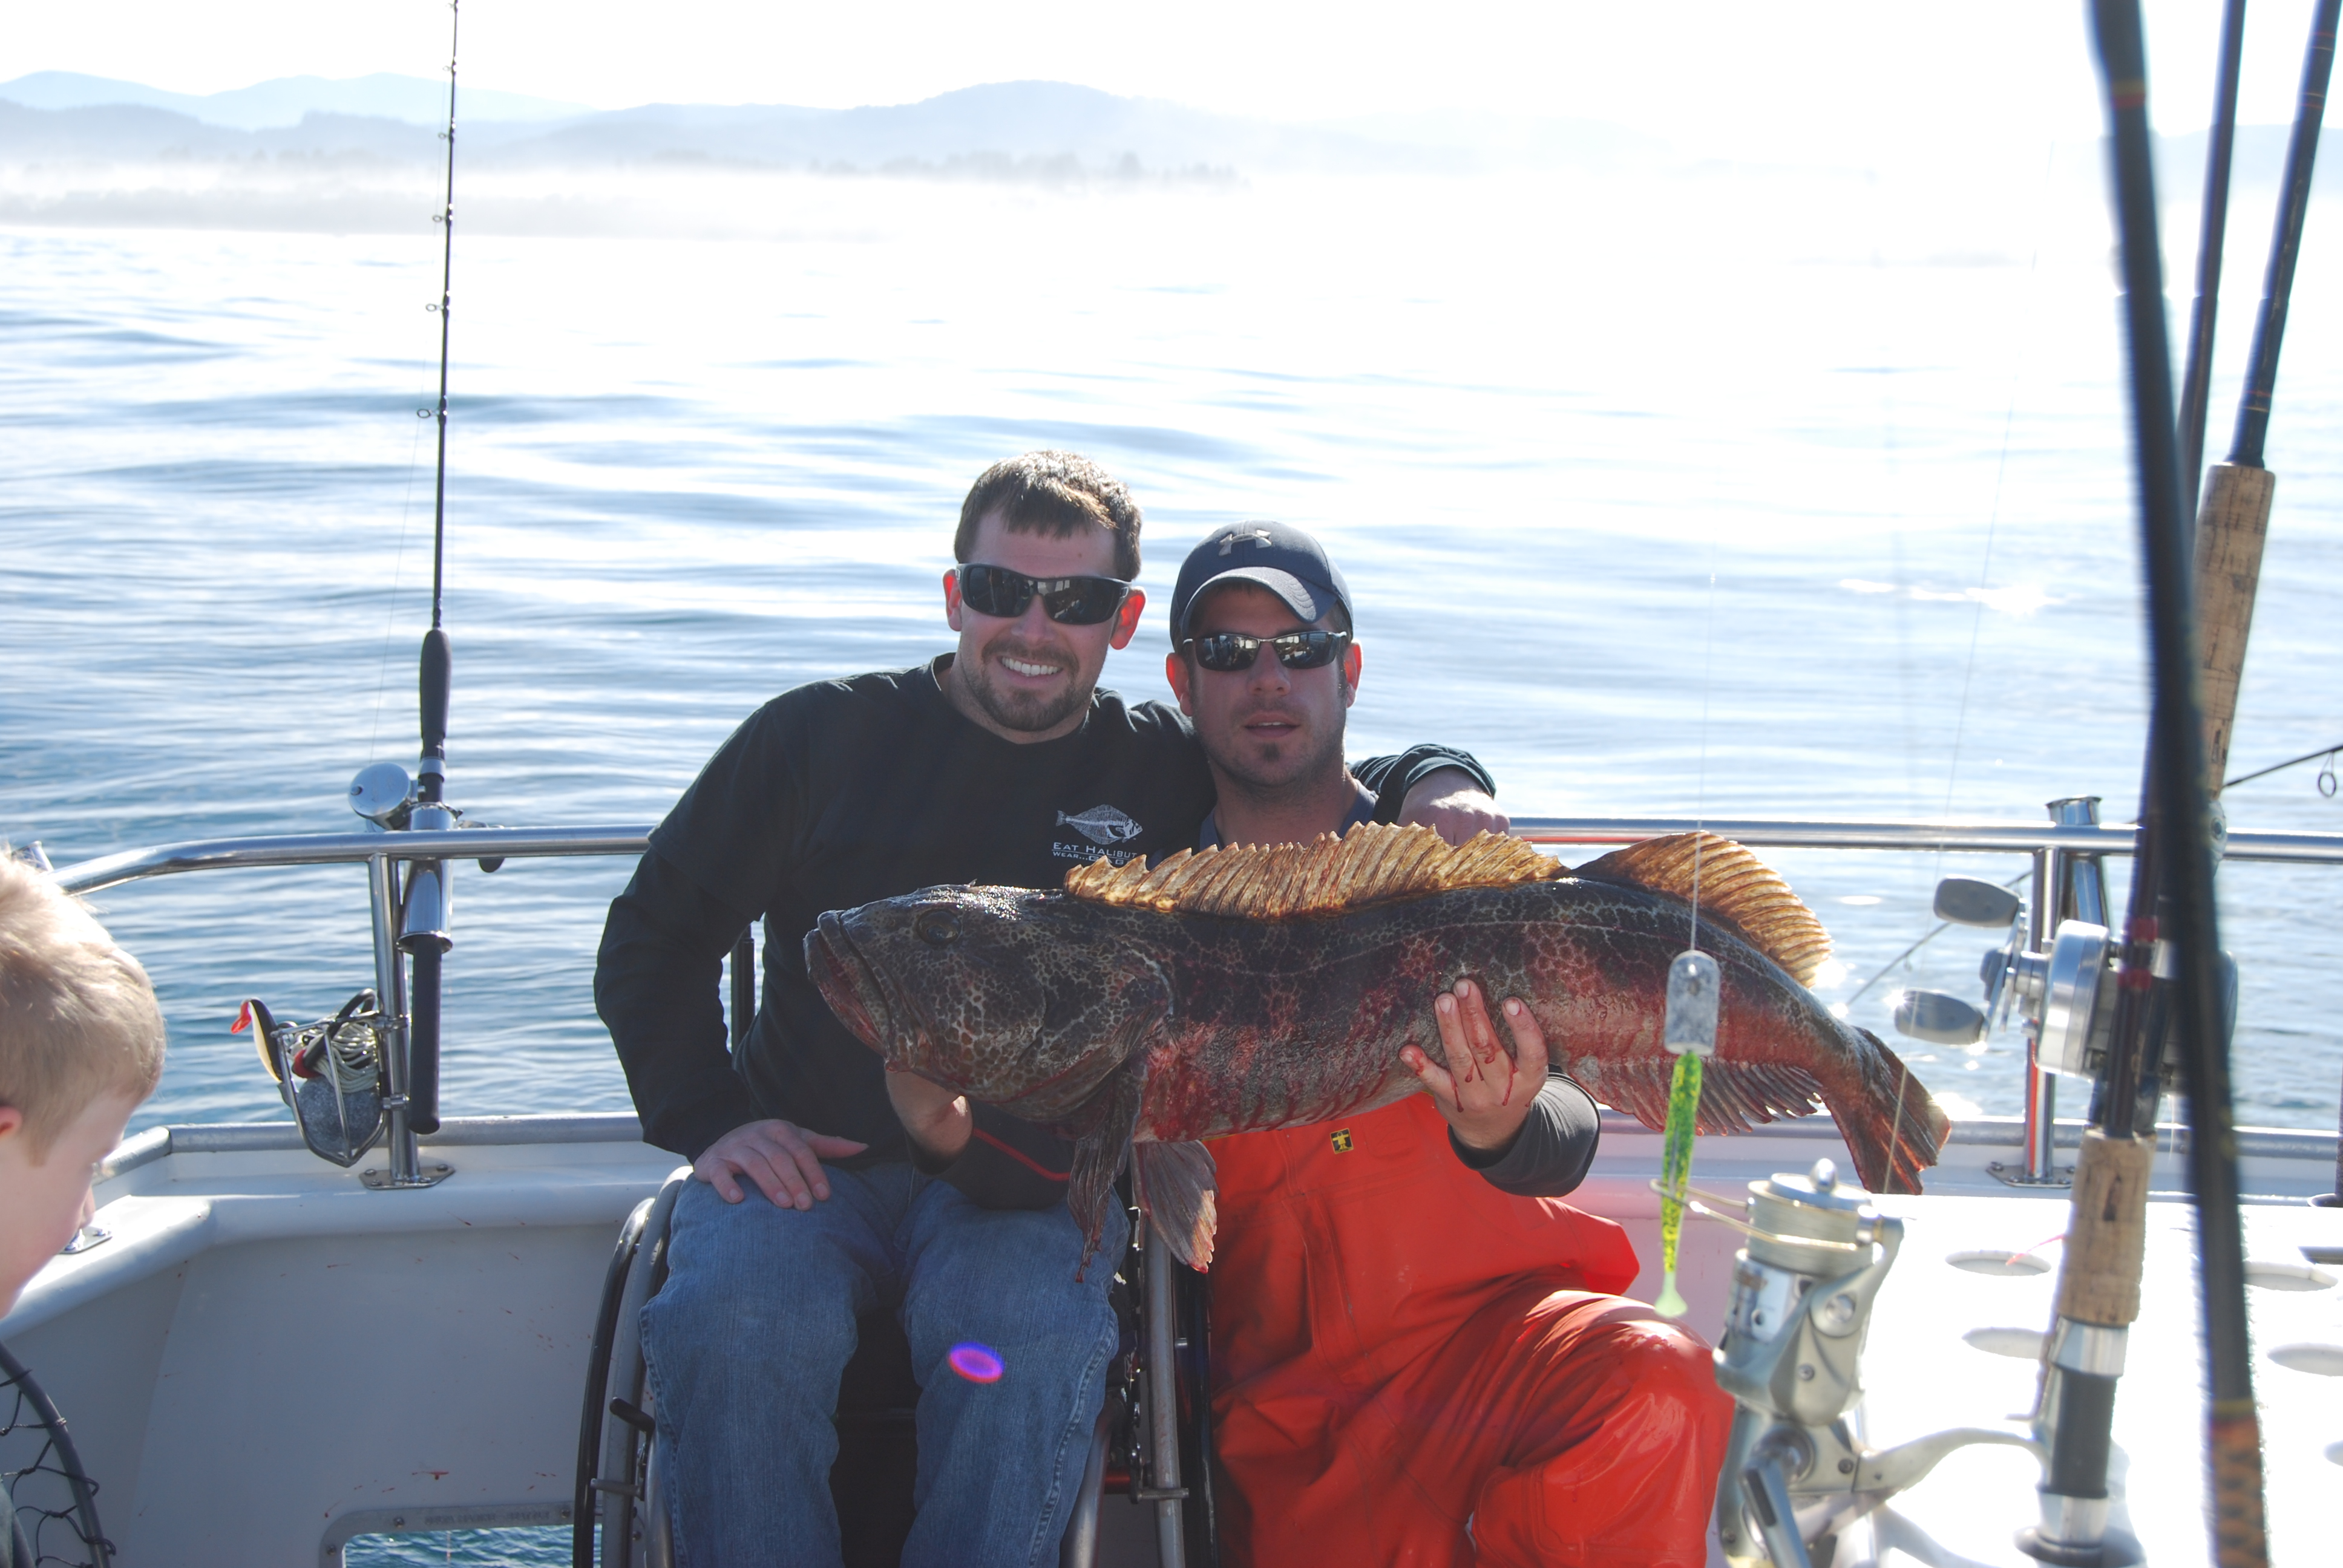 two people holding a lingcod fish aboard a fishing boat with fishing poles, one person is on a wheelchair